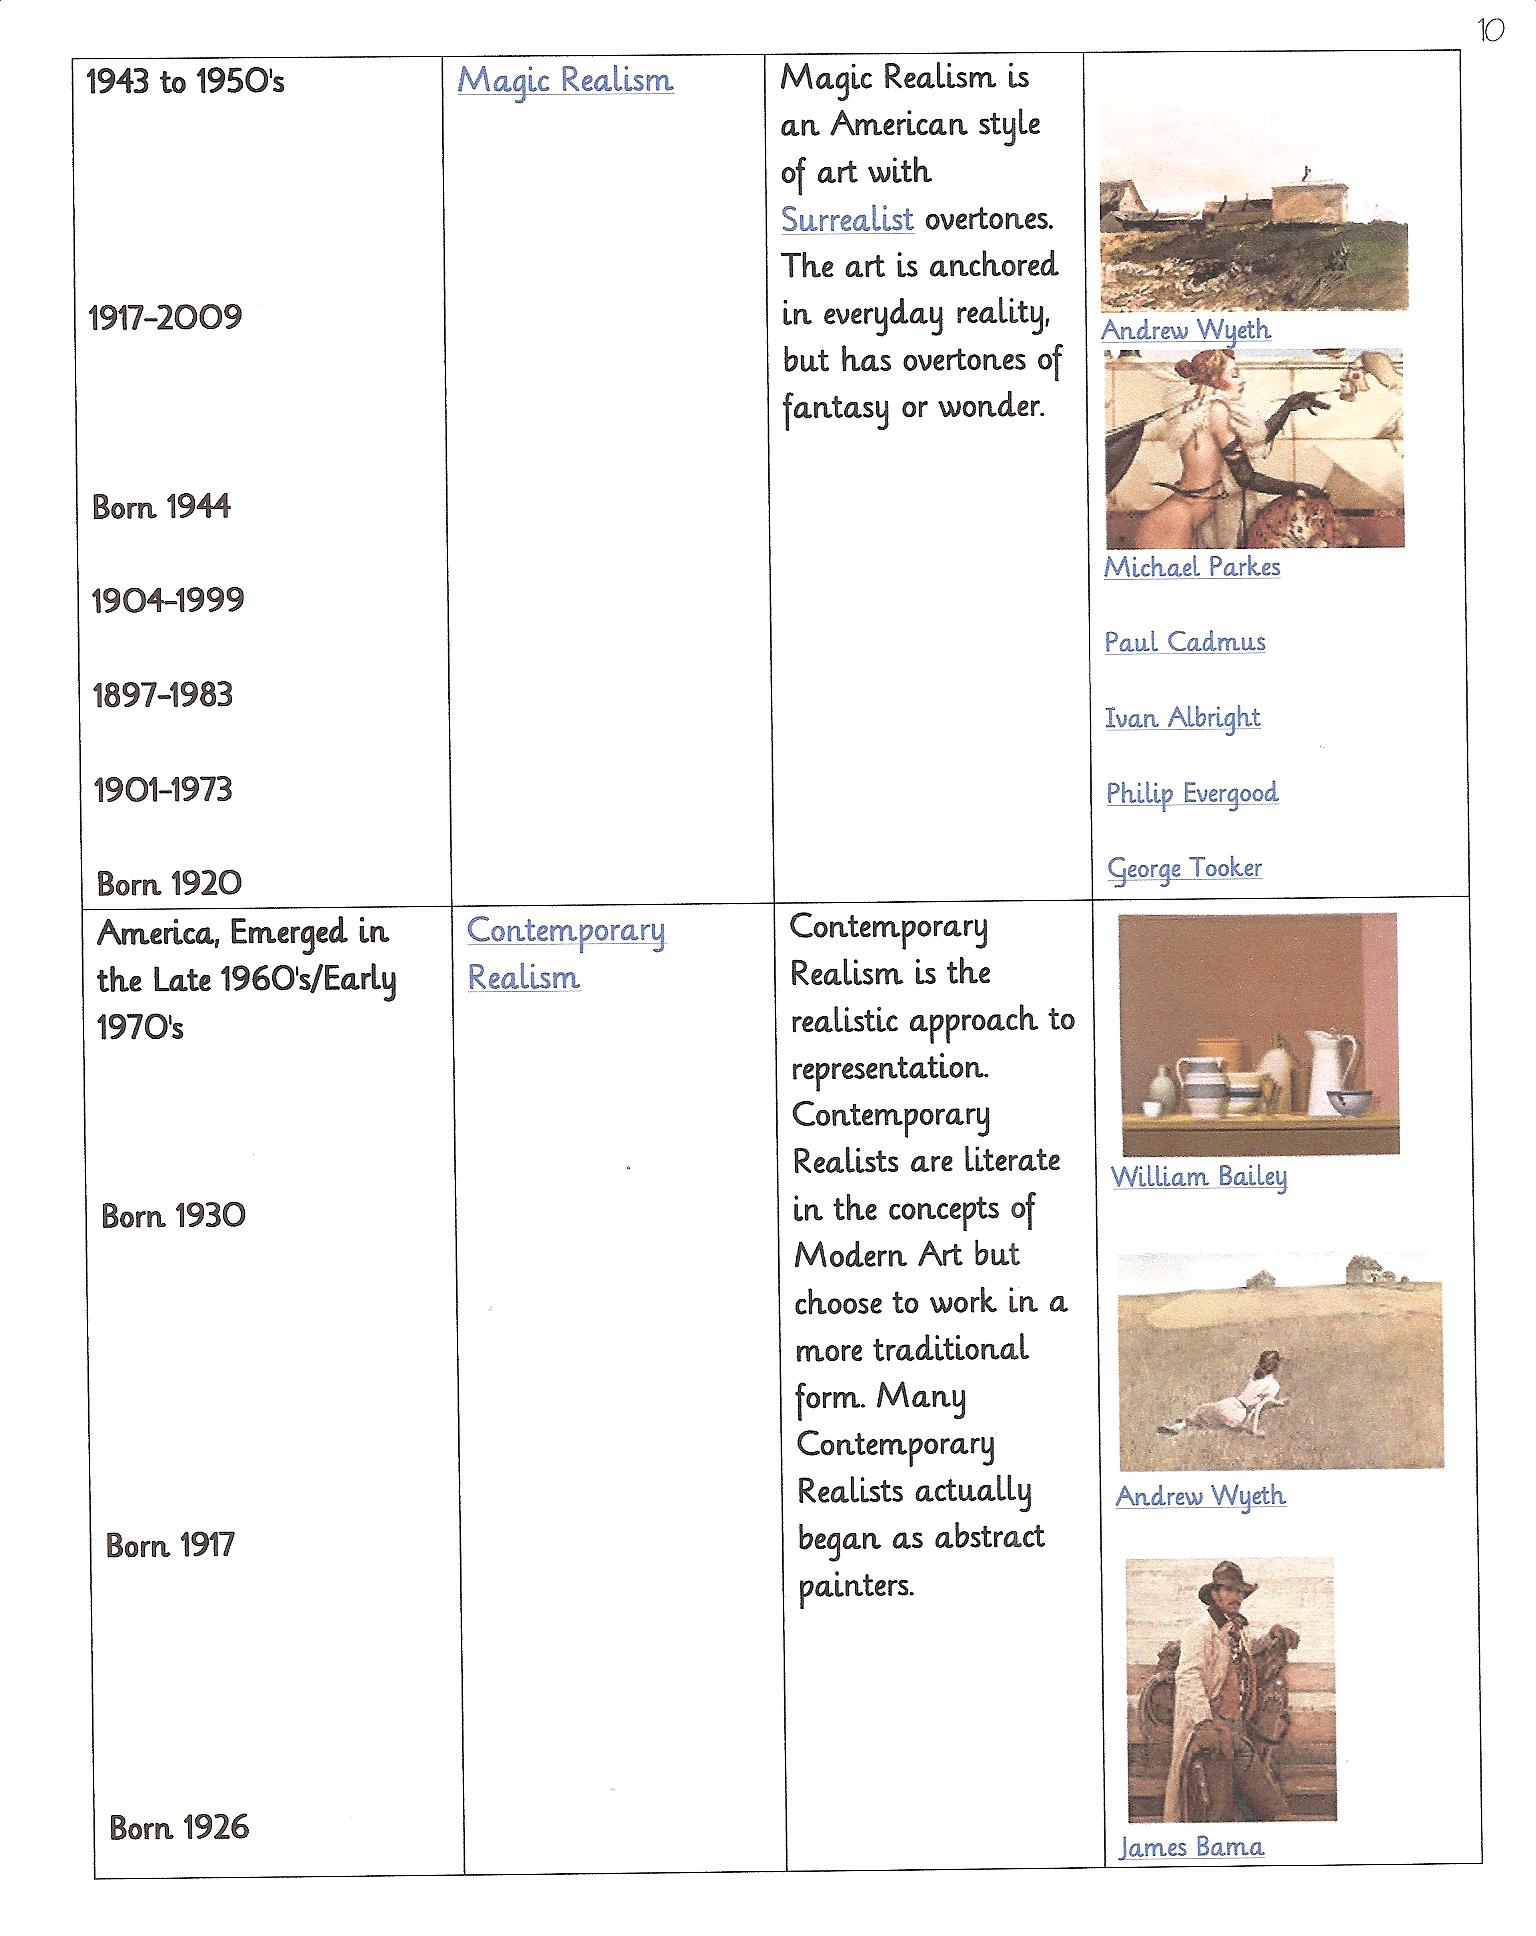 Art Era Timeline 3 Early 20th Century To Modernism